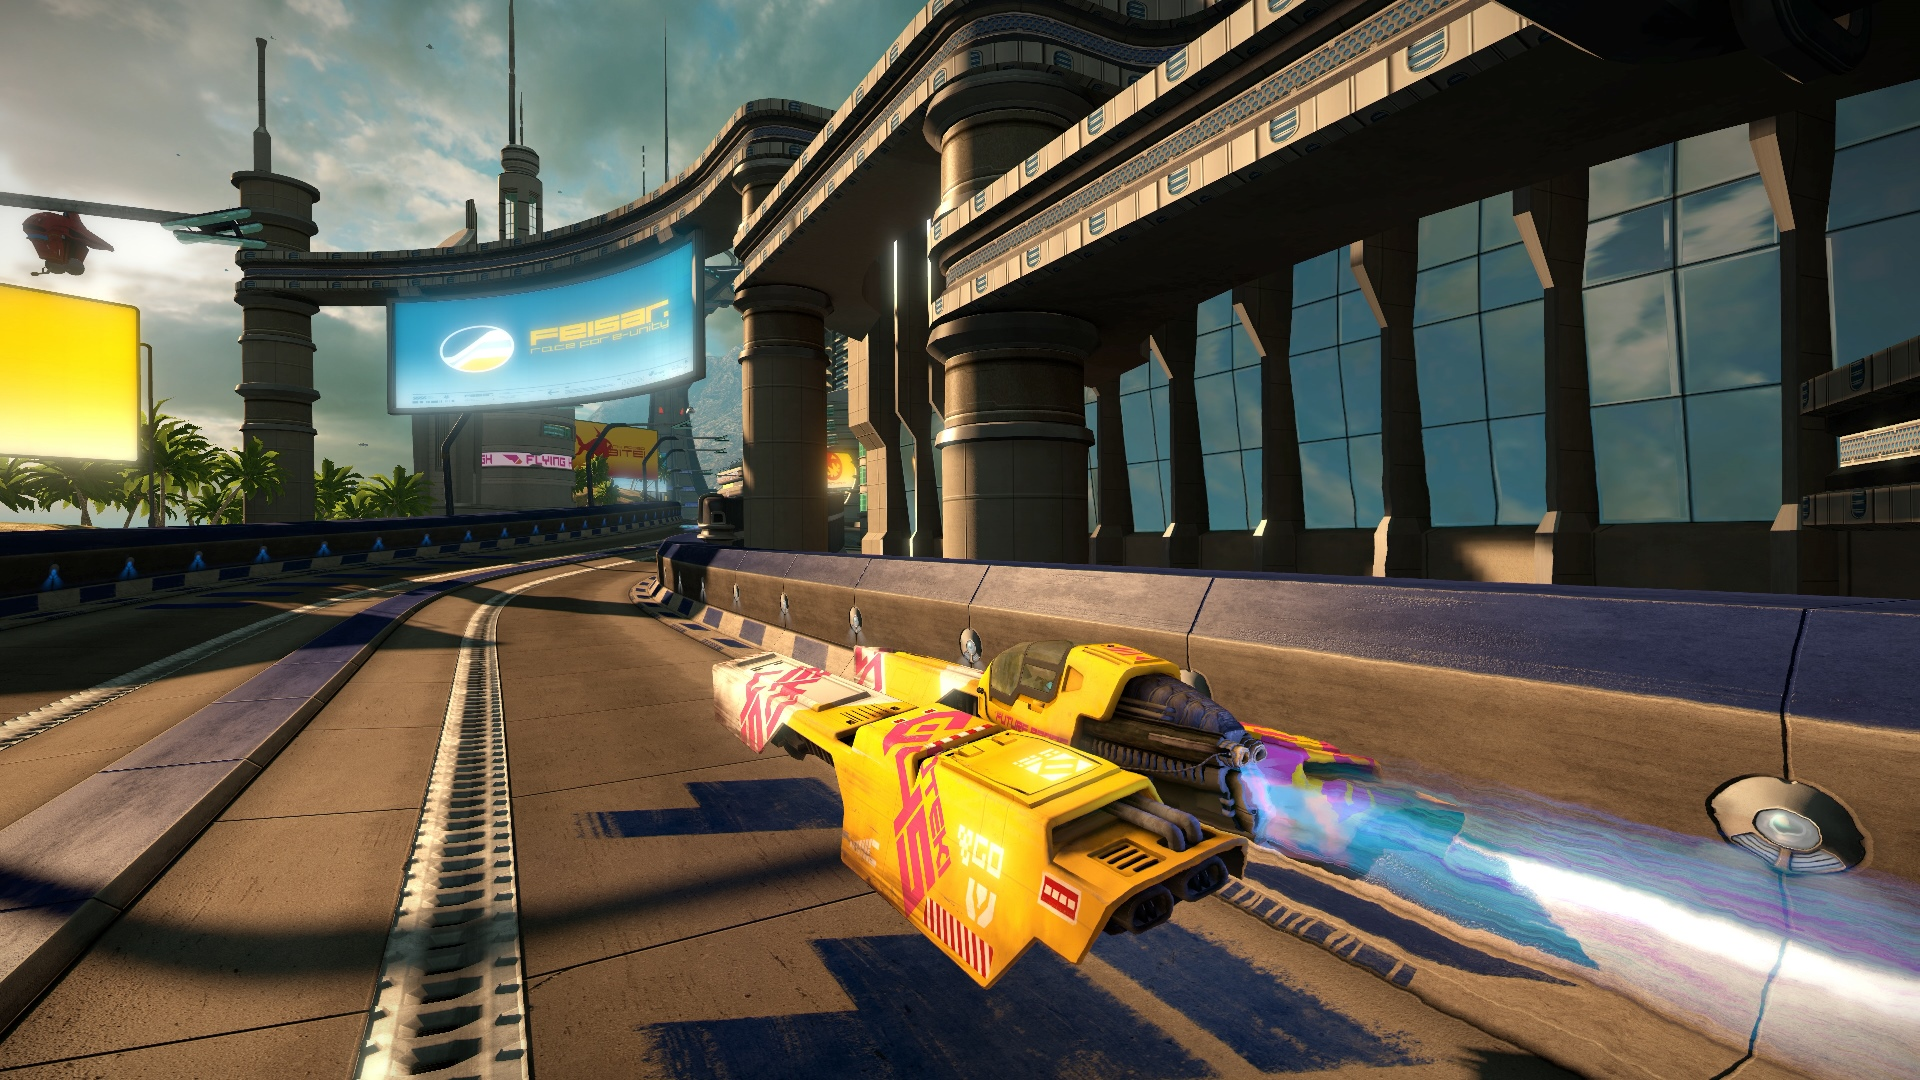 Color zen metacritic -  Of Wipeout Hd And 2084 By A Little Known Developer Clever Beans Ltd But The Manchester Based Studio Has Delivered The Goods The Metacritic Currently